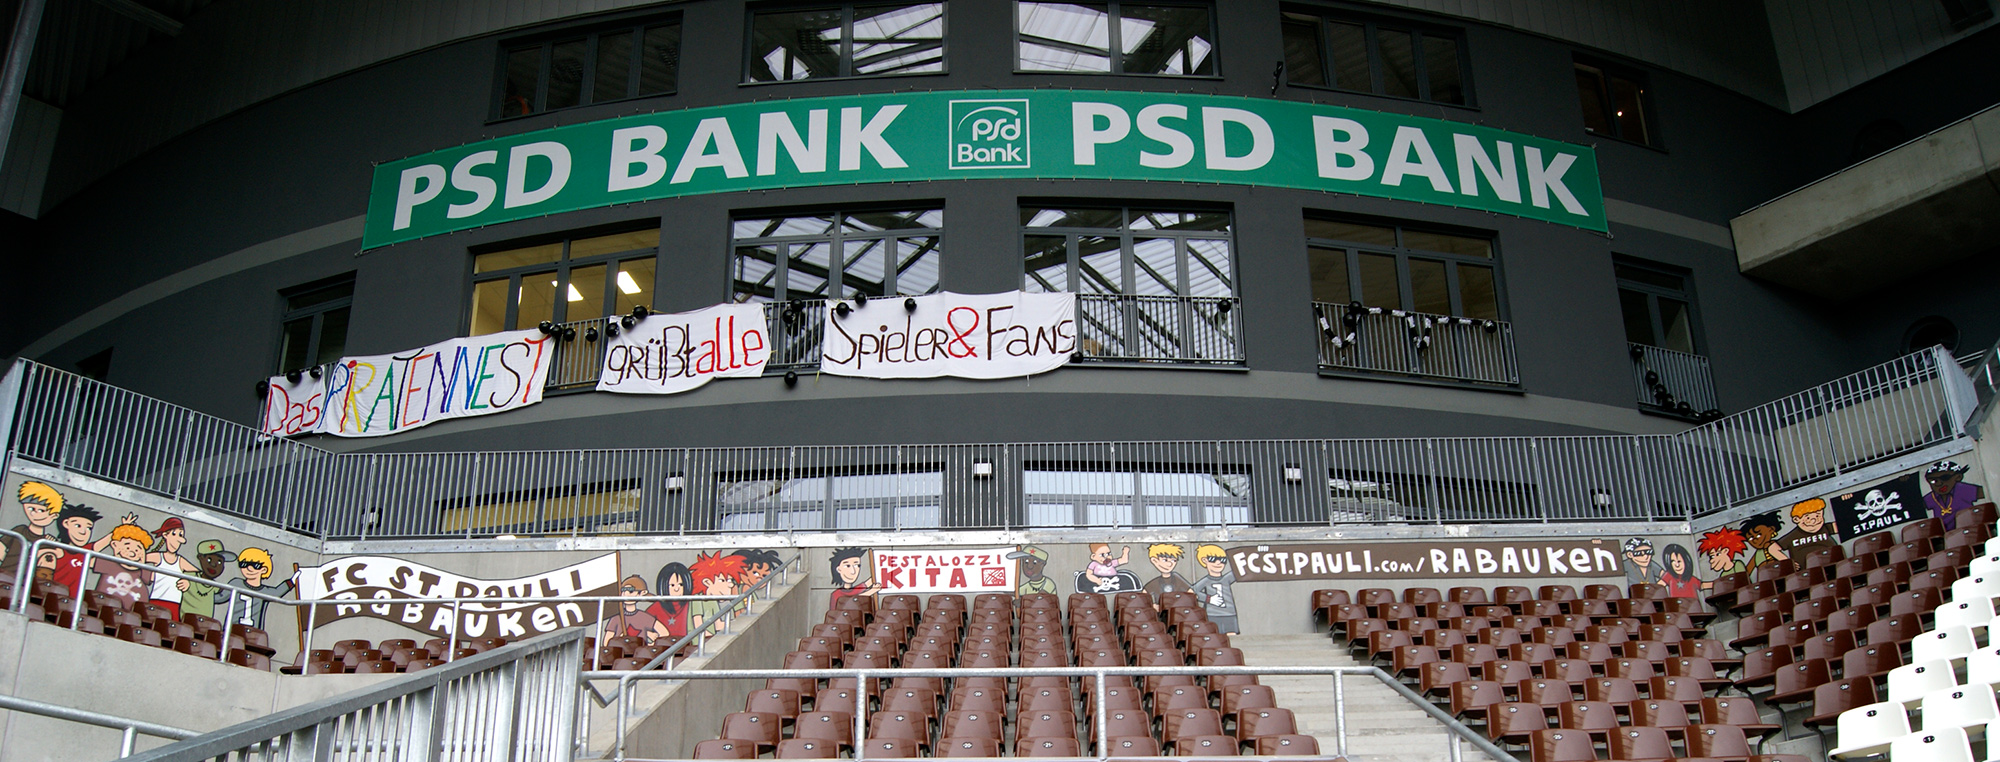 st pauli graffiti fassadengestaltung im fu ball stadion. Black Bedroom Furniture Sets. Home Design Ideas